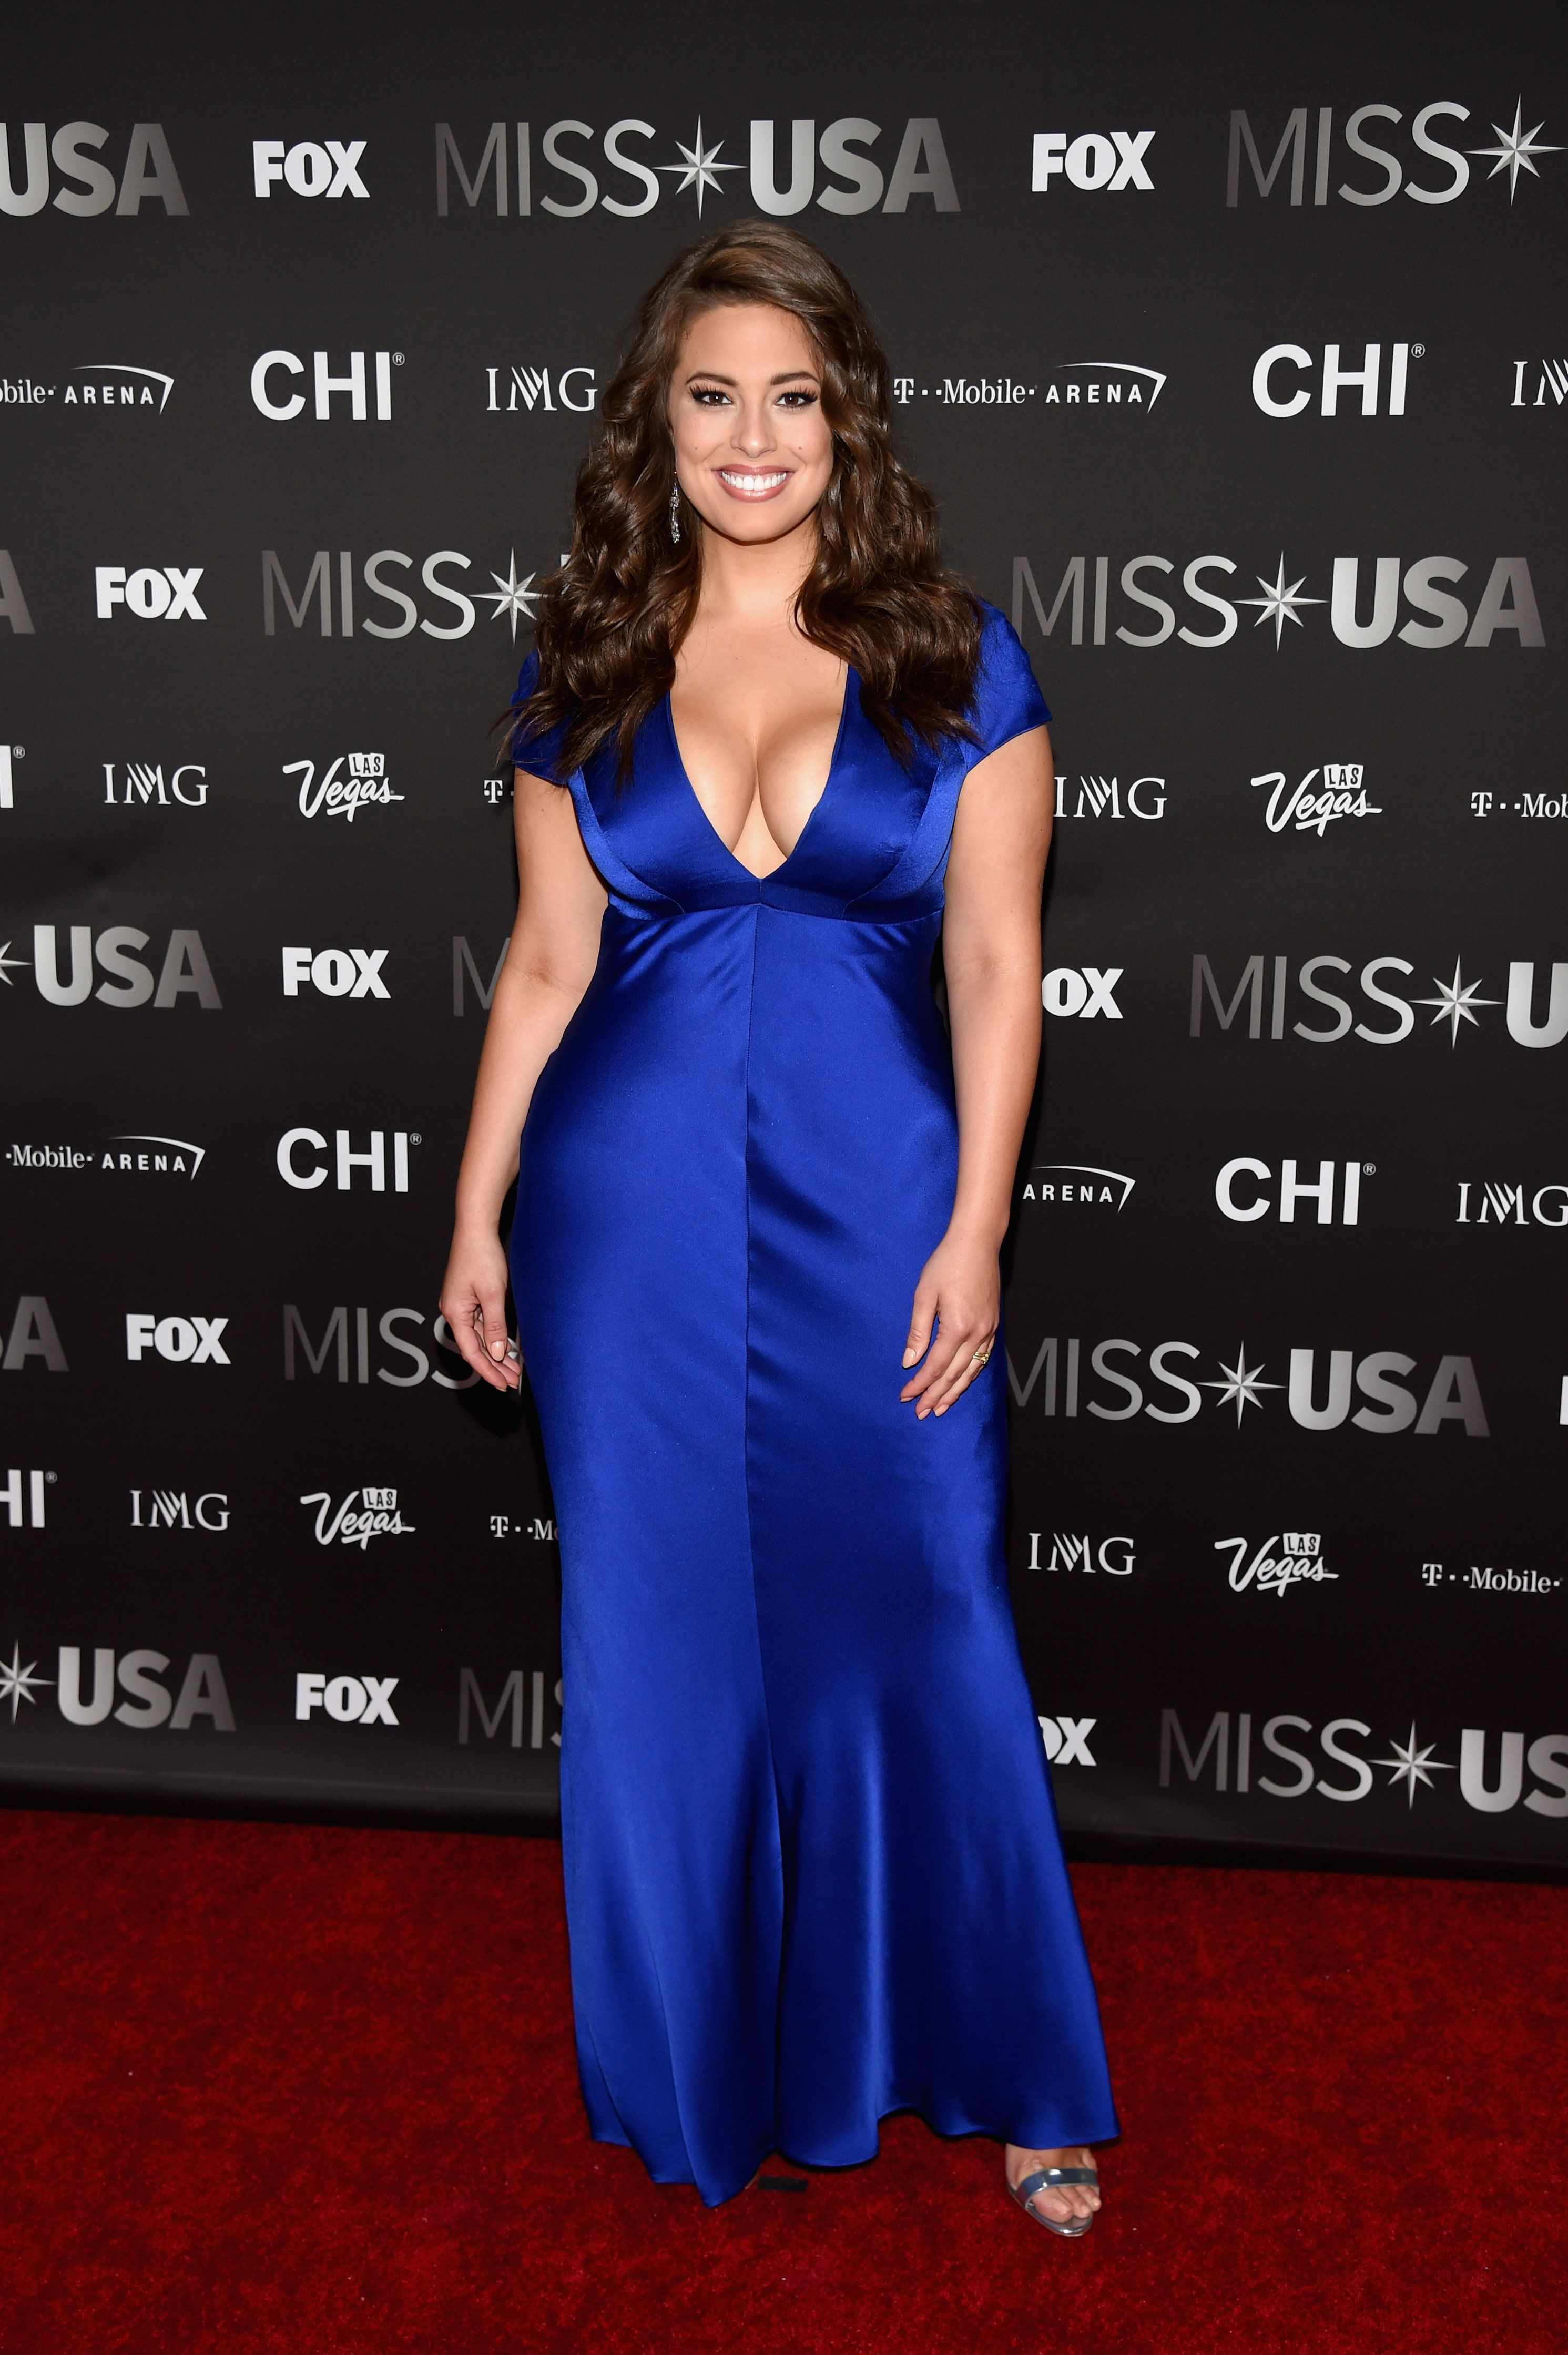 Cocktail Dresses Miss USA